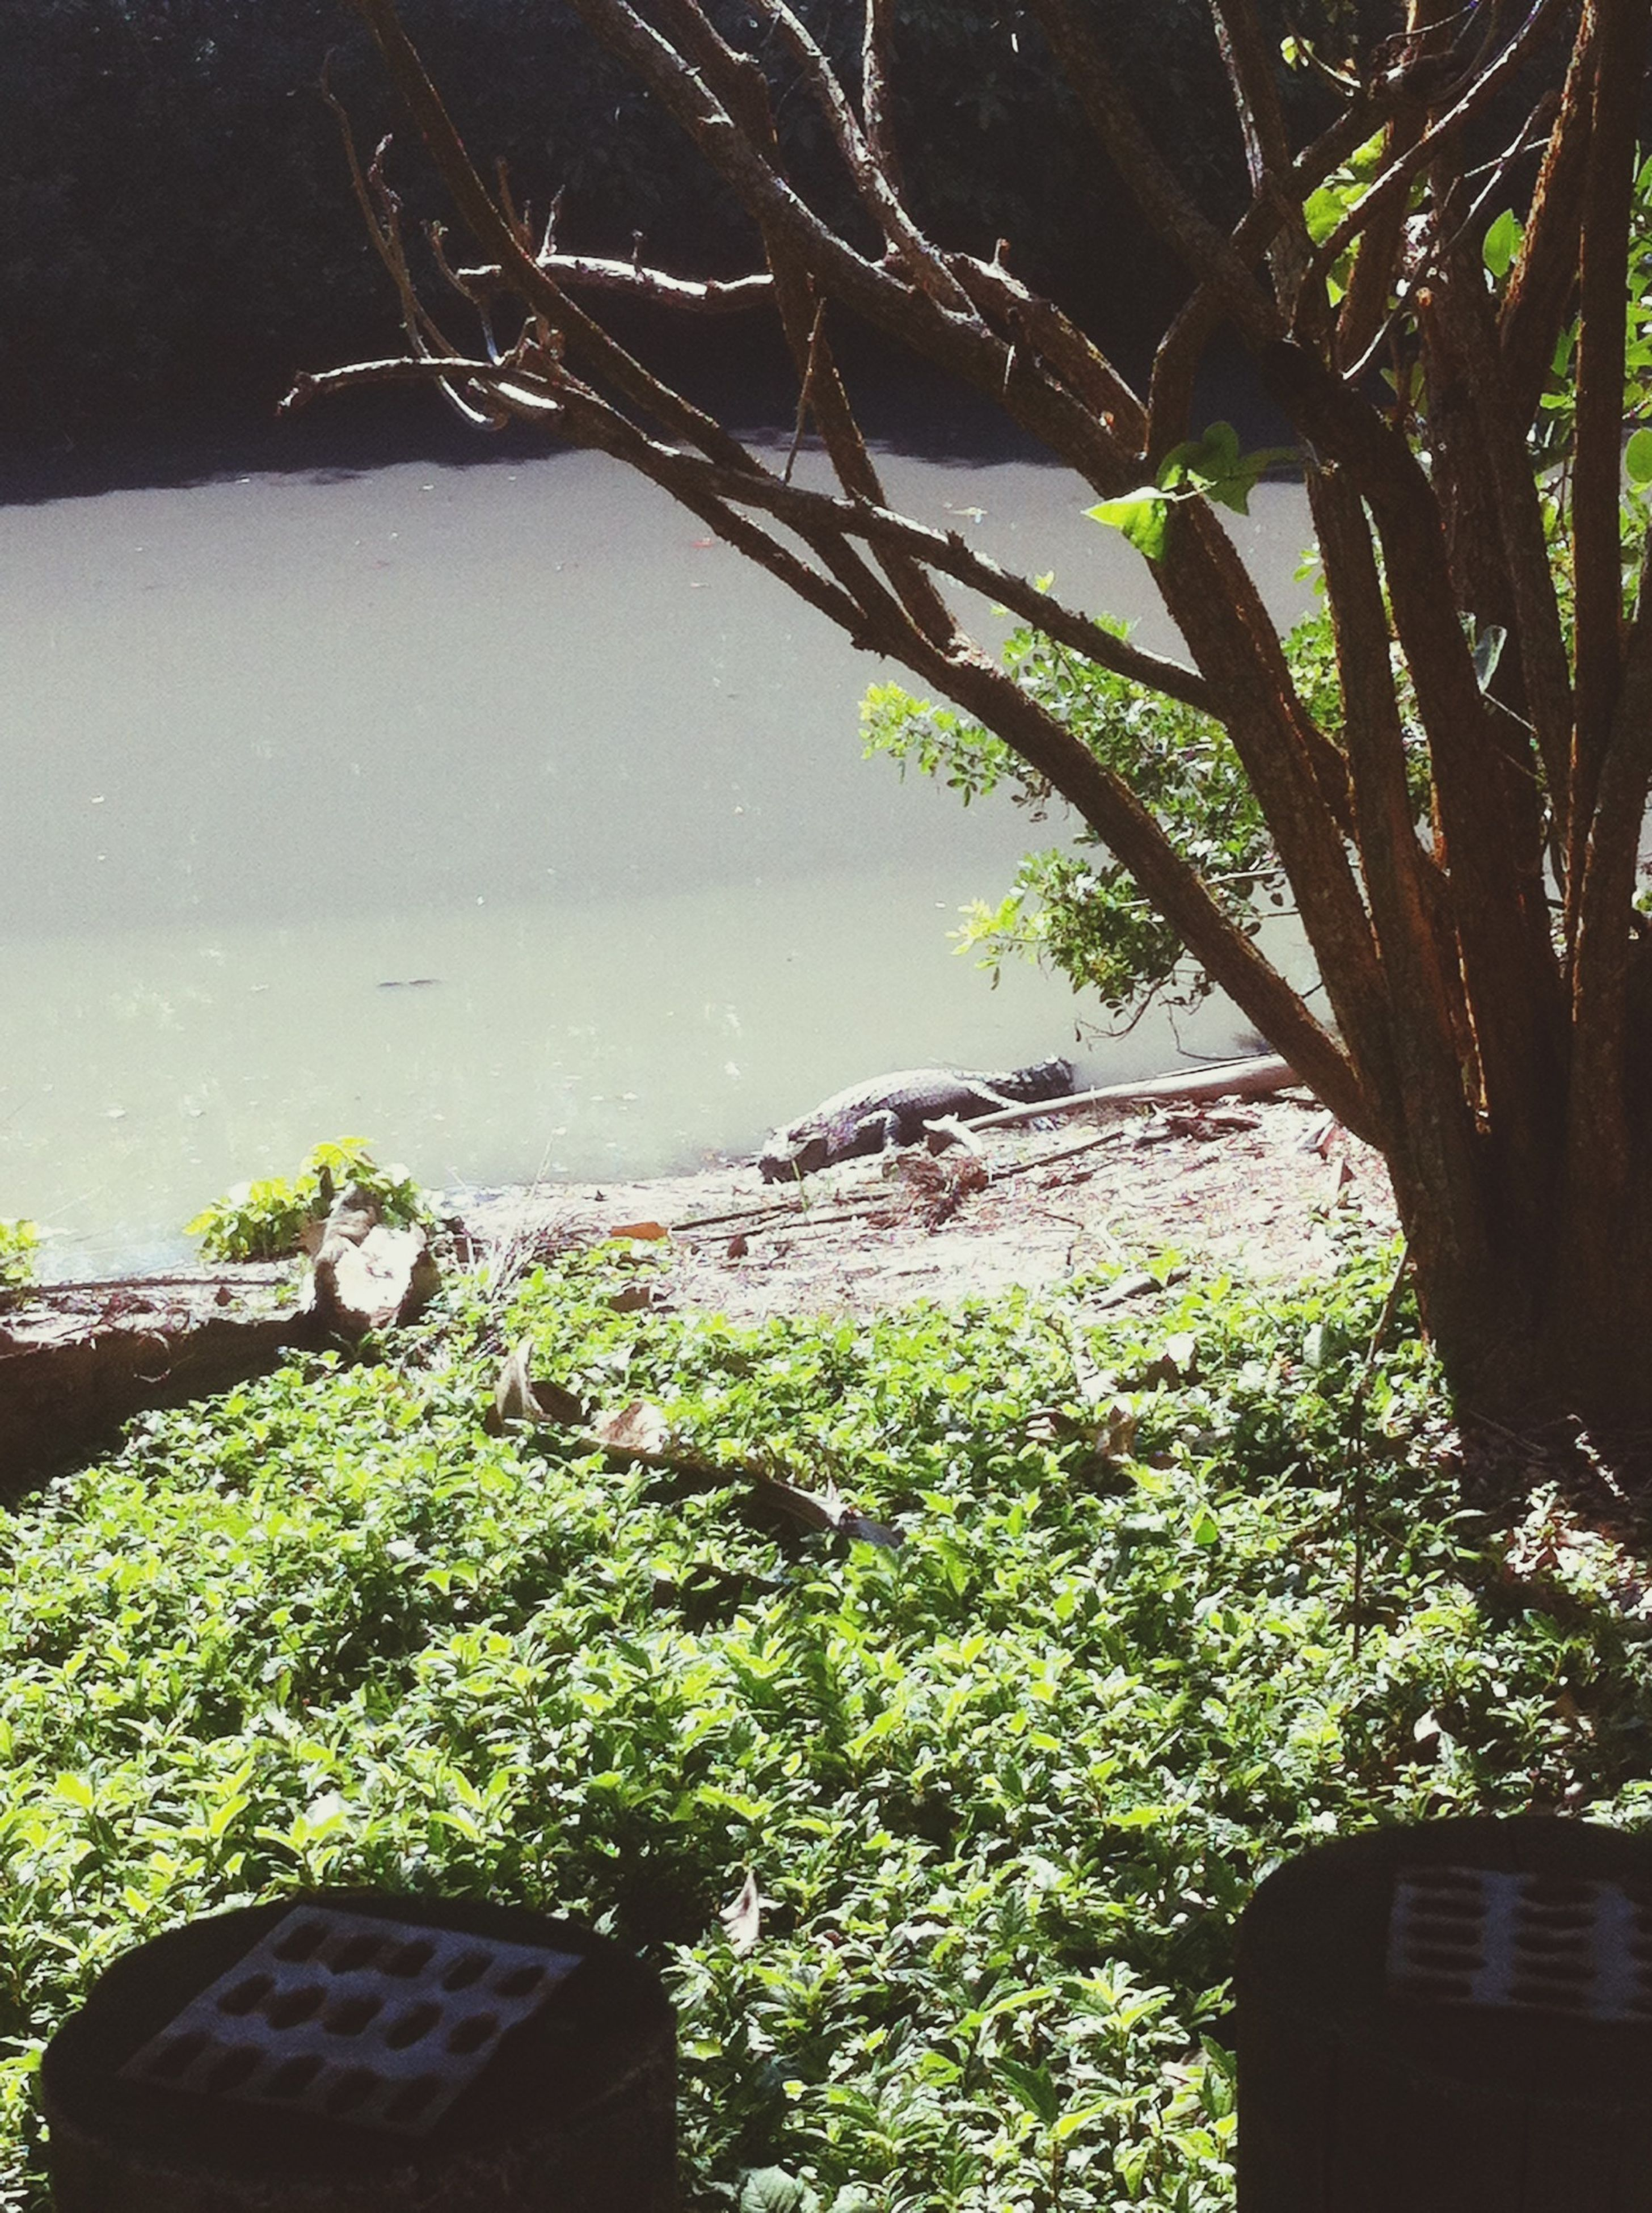 tree, growth, plant, nature, tranquility, water, green color, sea, tranquil scene, potted plant, sky, no people, day, beauty in nature, horizon over water, outdoors, scenics, leaf, branch, sunlight